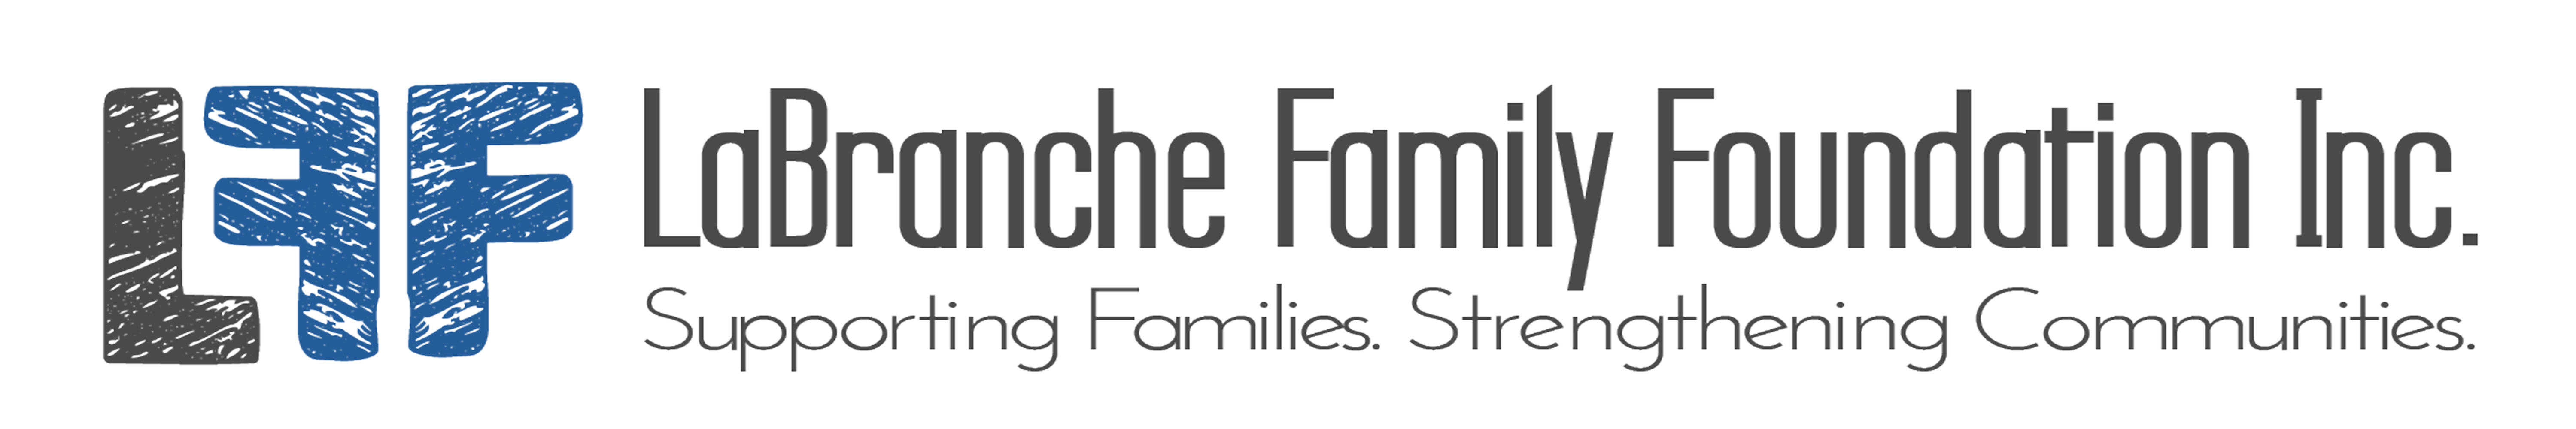 LaBranche Family Foundation